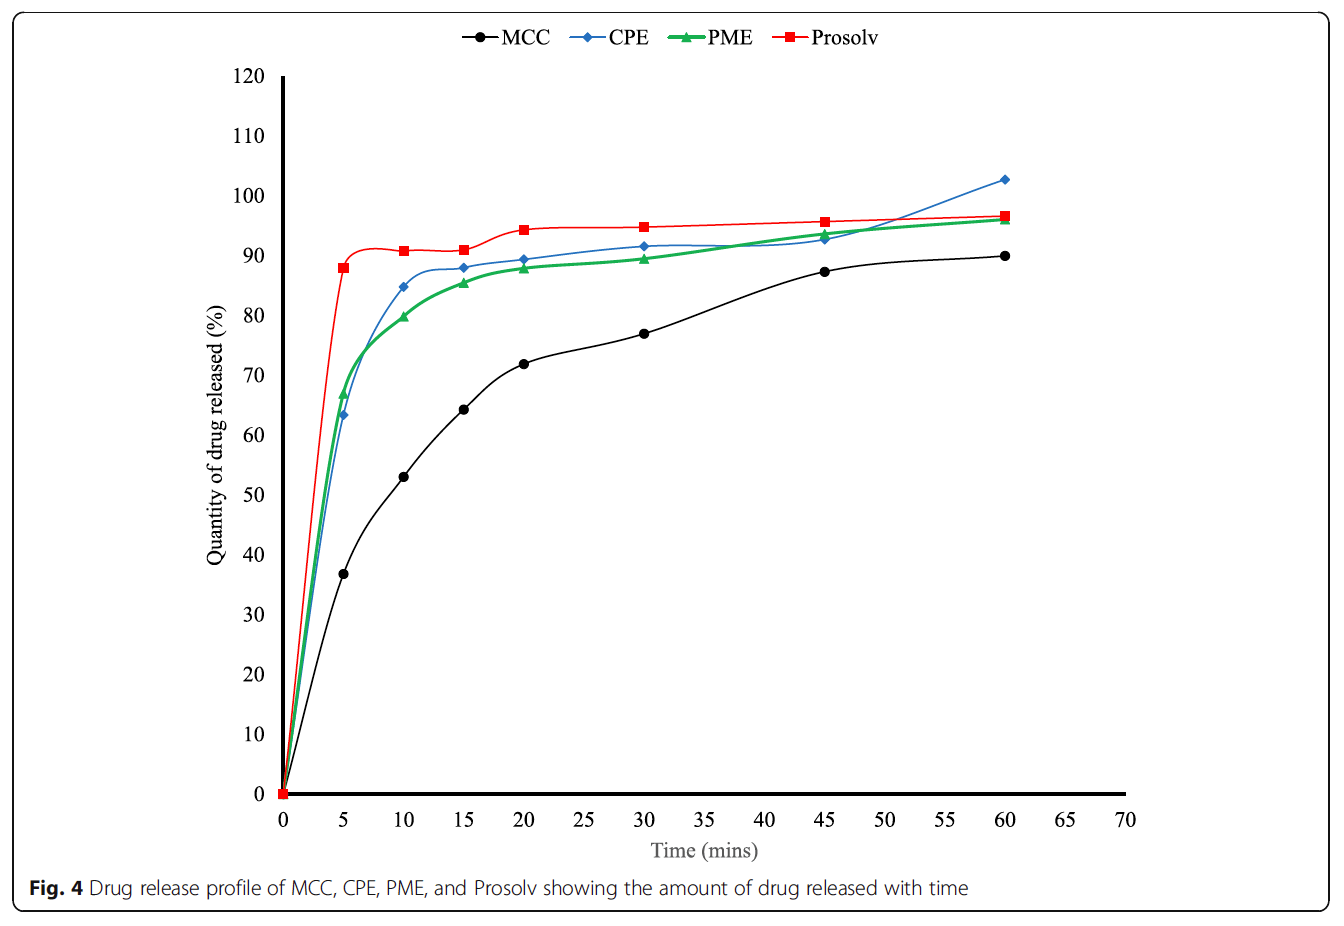 Figure 4, Drug release profile of MCC, CPE, PME, and Prosolv showing the amount of drug released with time